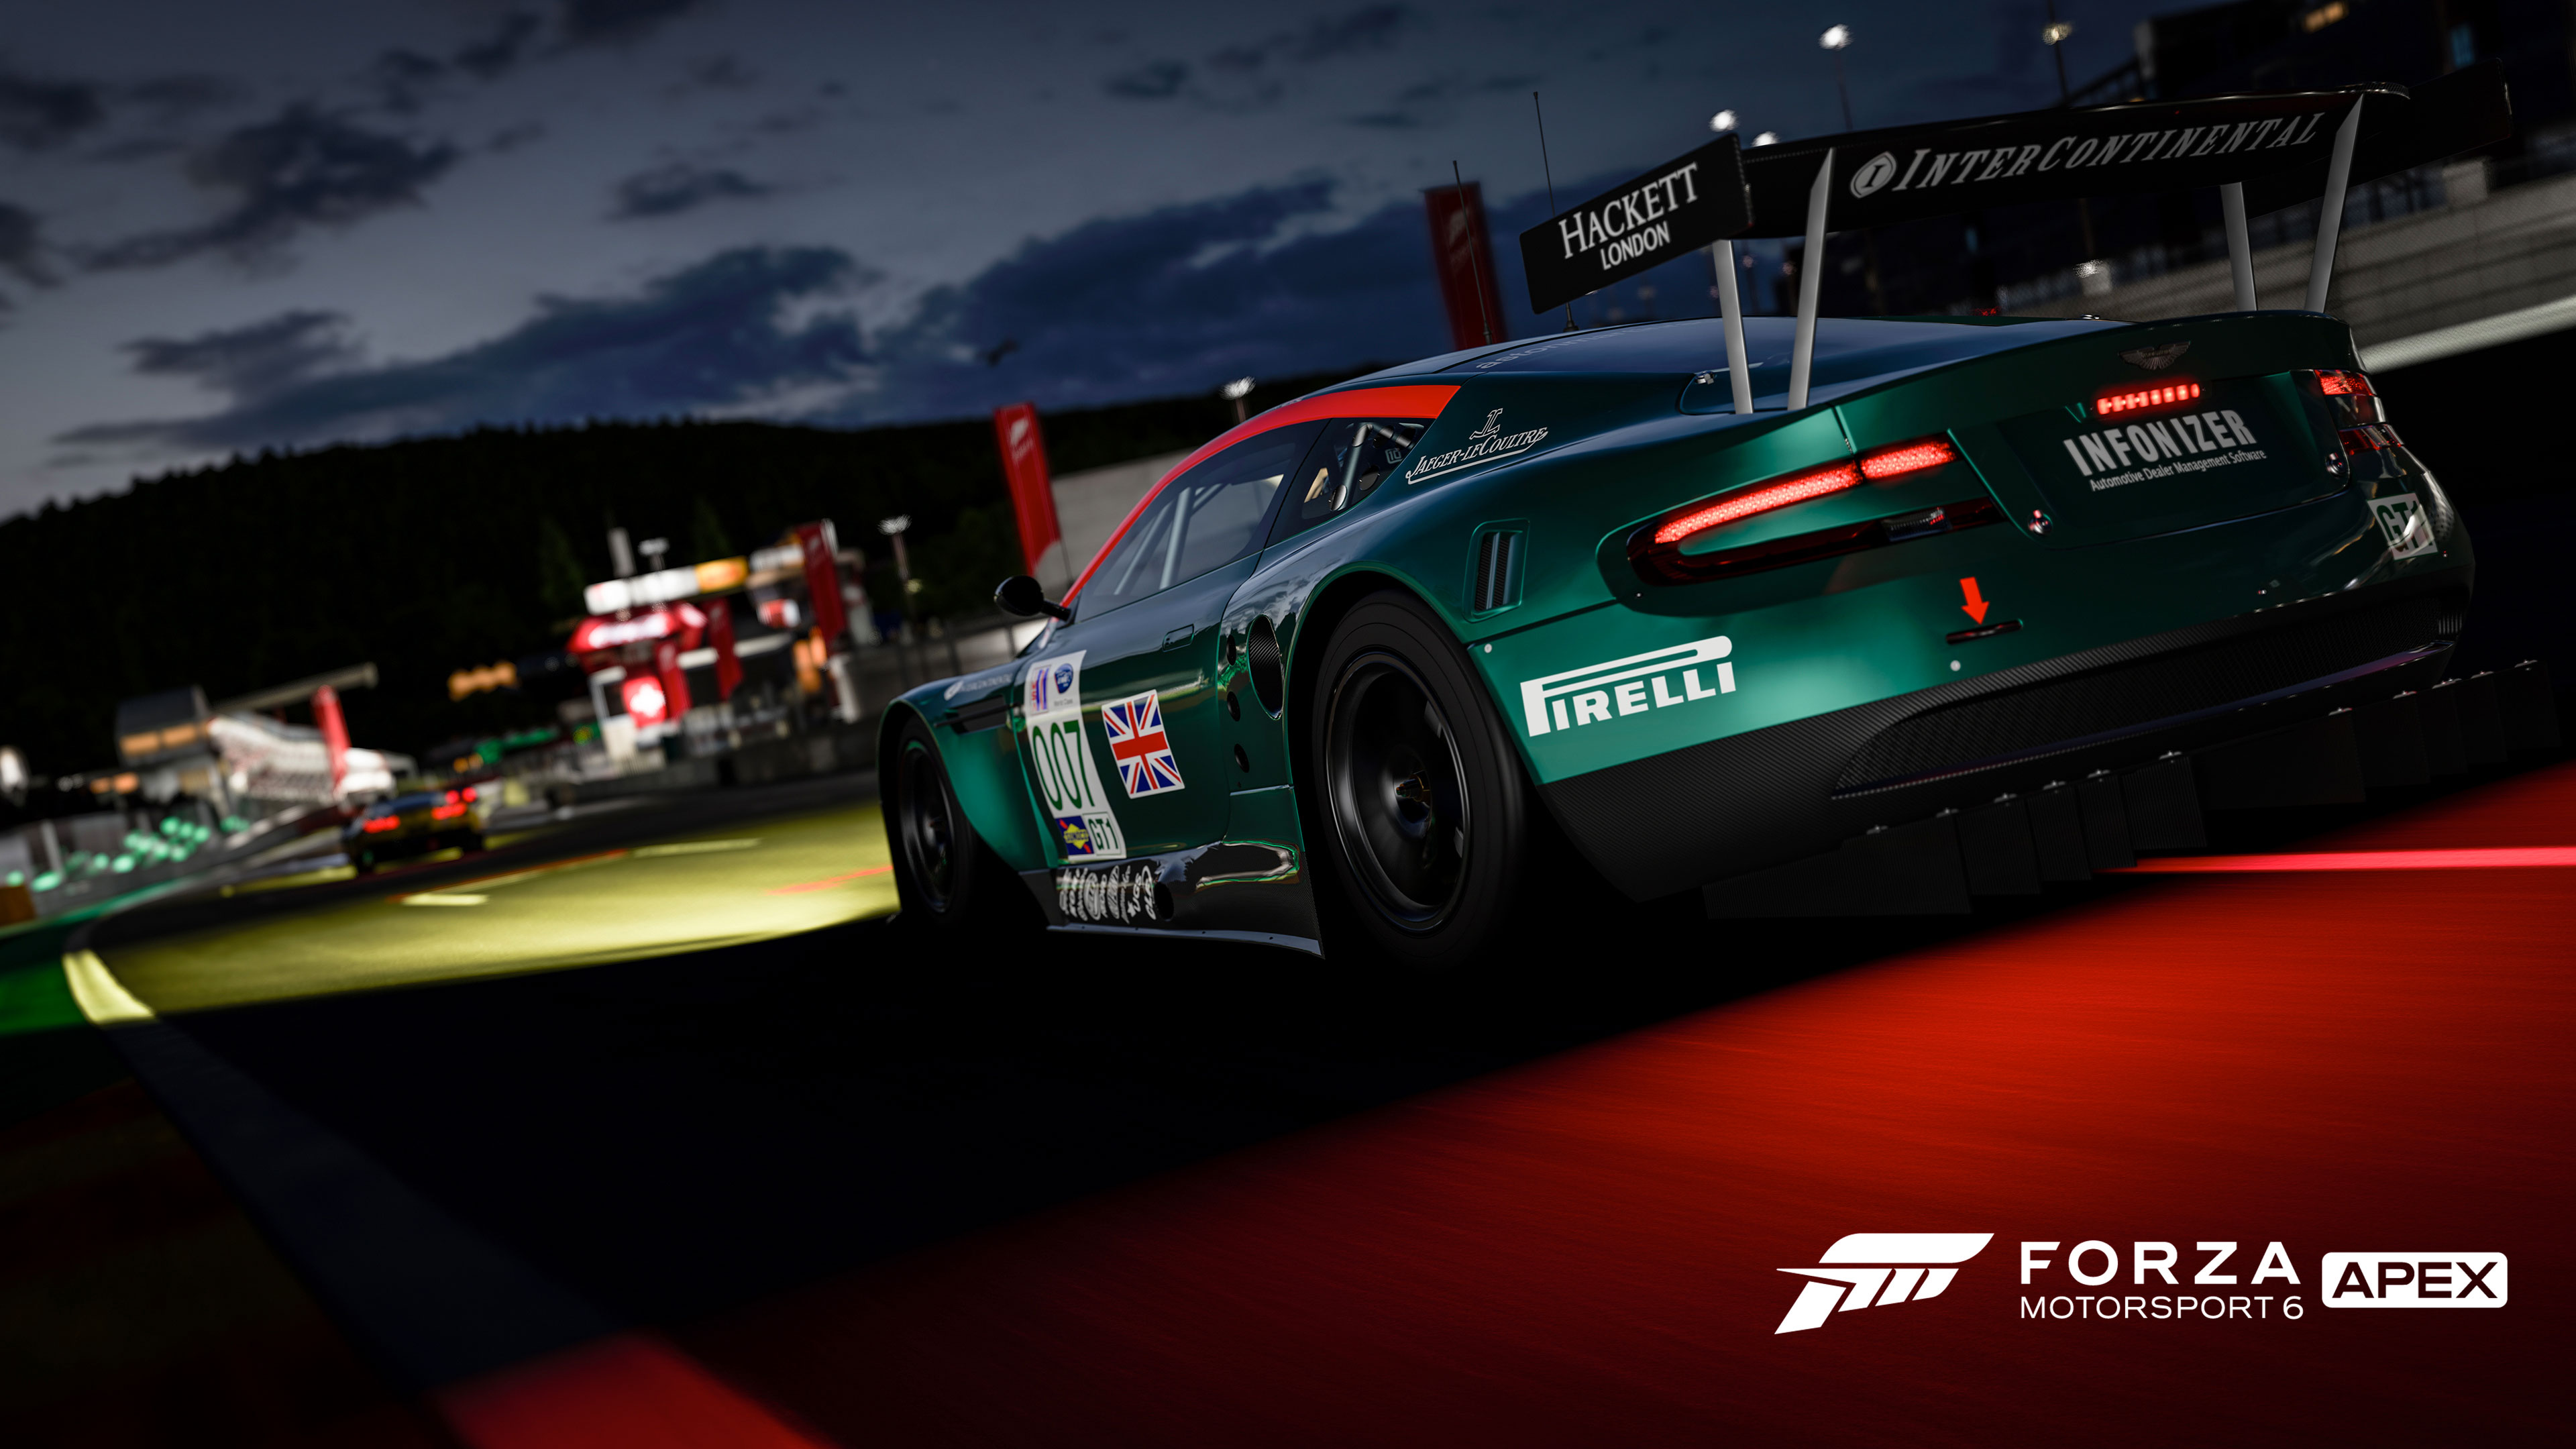 Forza Motorsport 7 Wallpapers Ultra Hd Gaming Backgrounds: Forza Motorsport 6 Wallpapers In Ultra HD